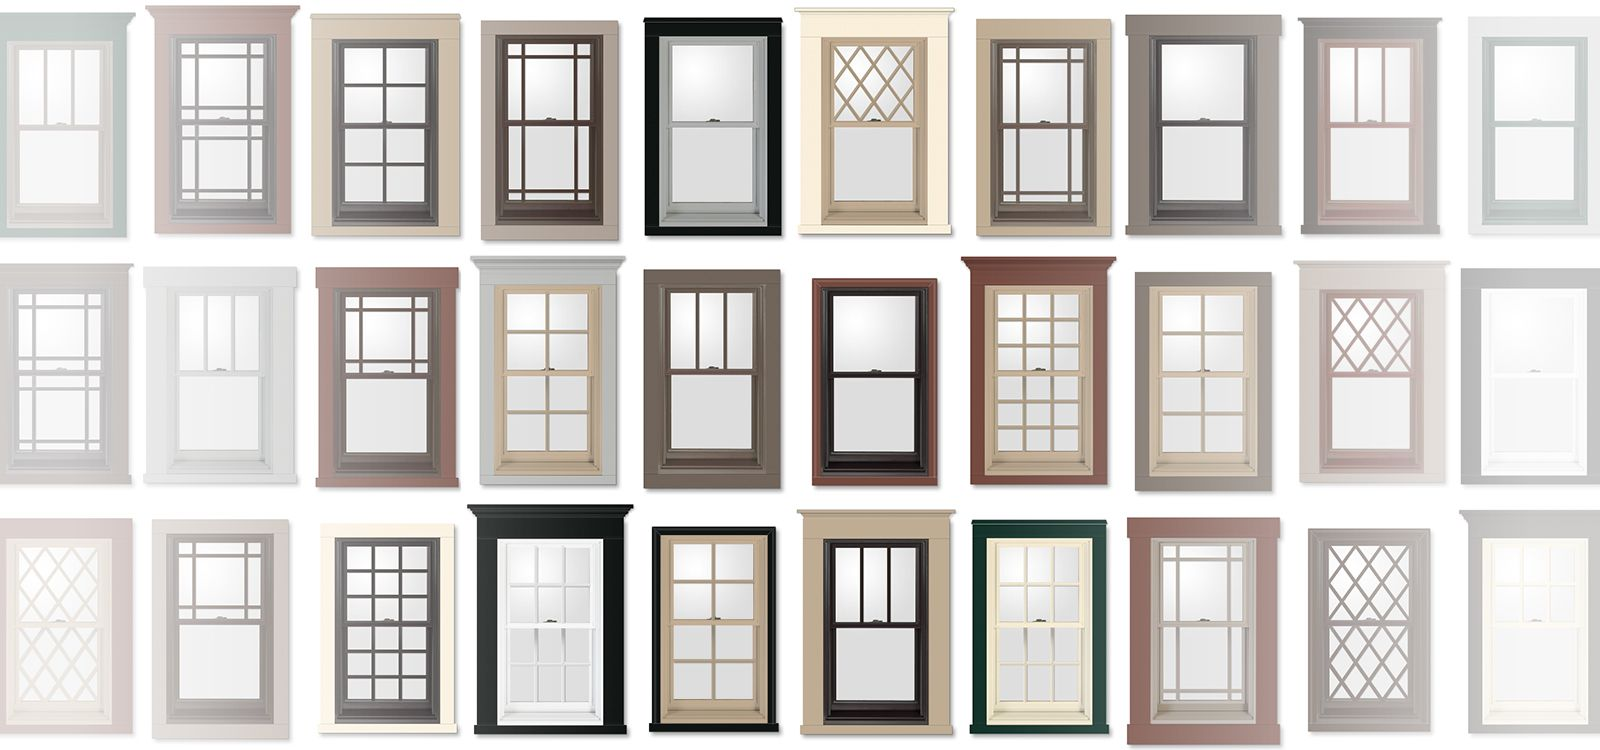 Andersen windows and patio doors 1 in quality and used for New window styles for homes